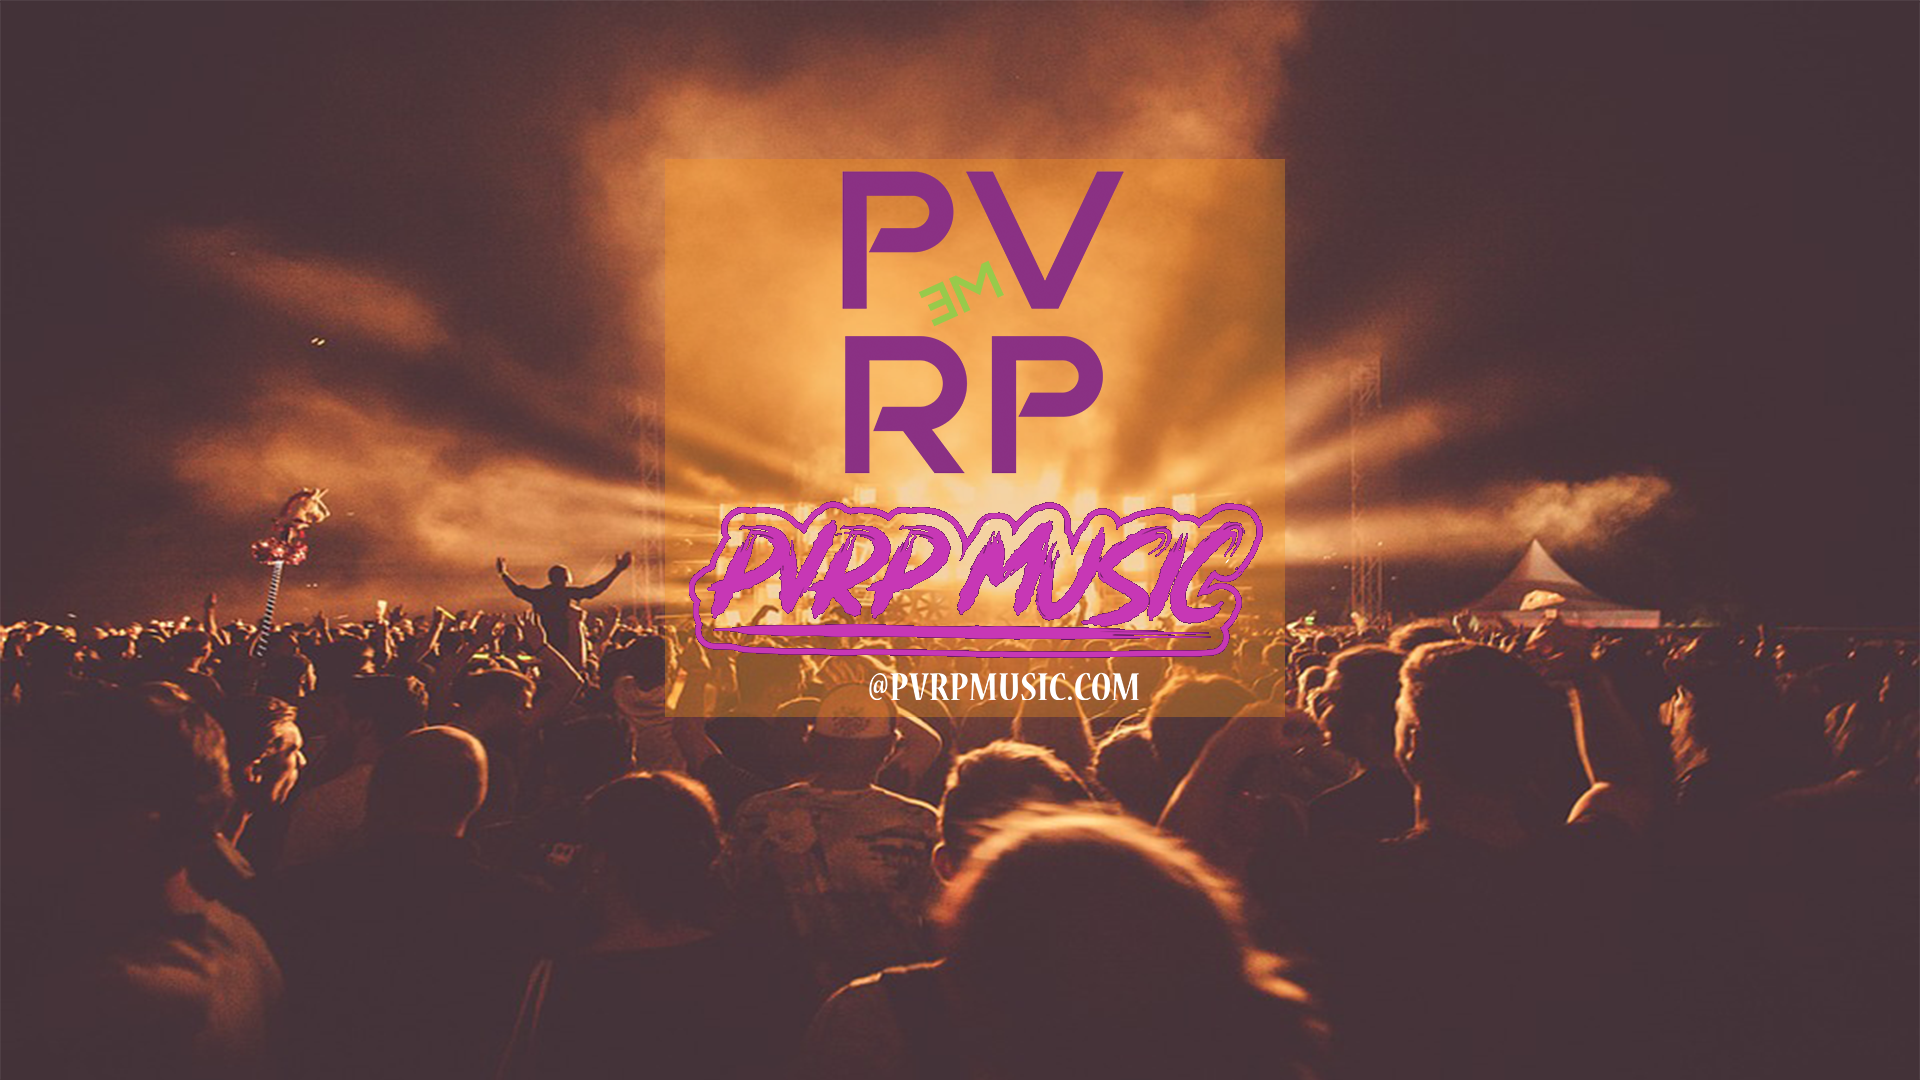 PVRP Music Marketing Agency Image